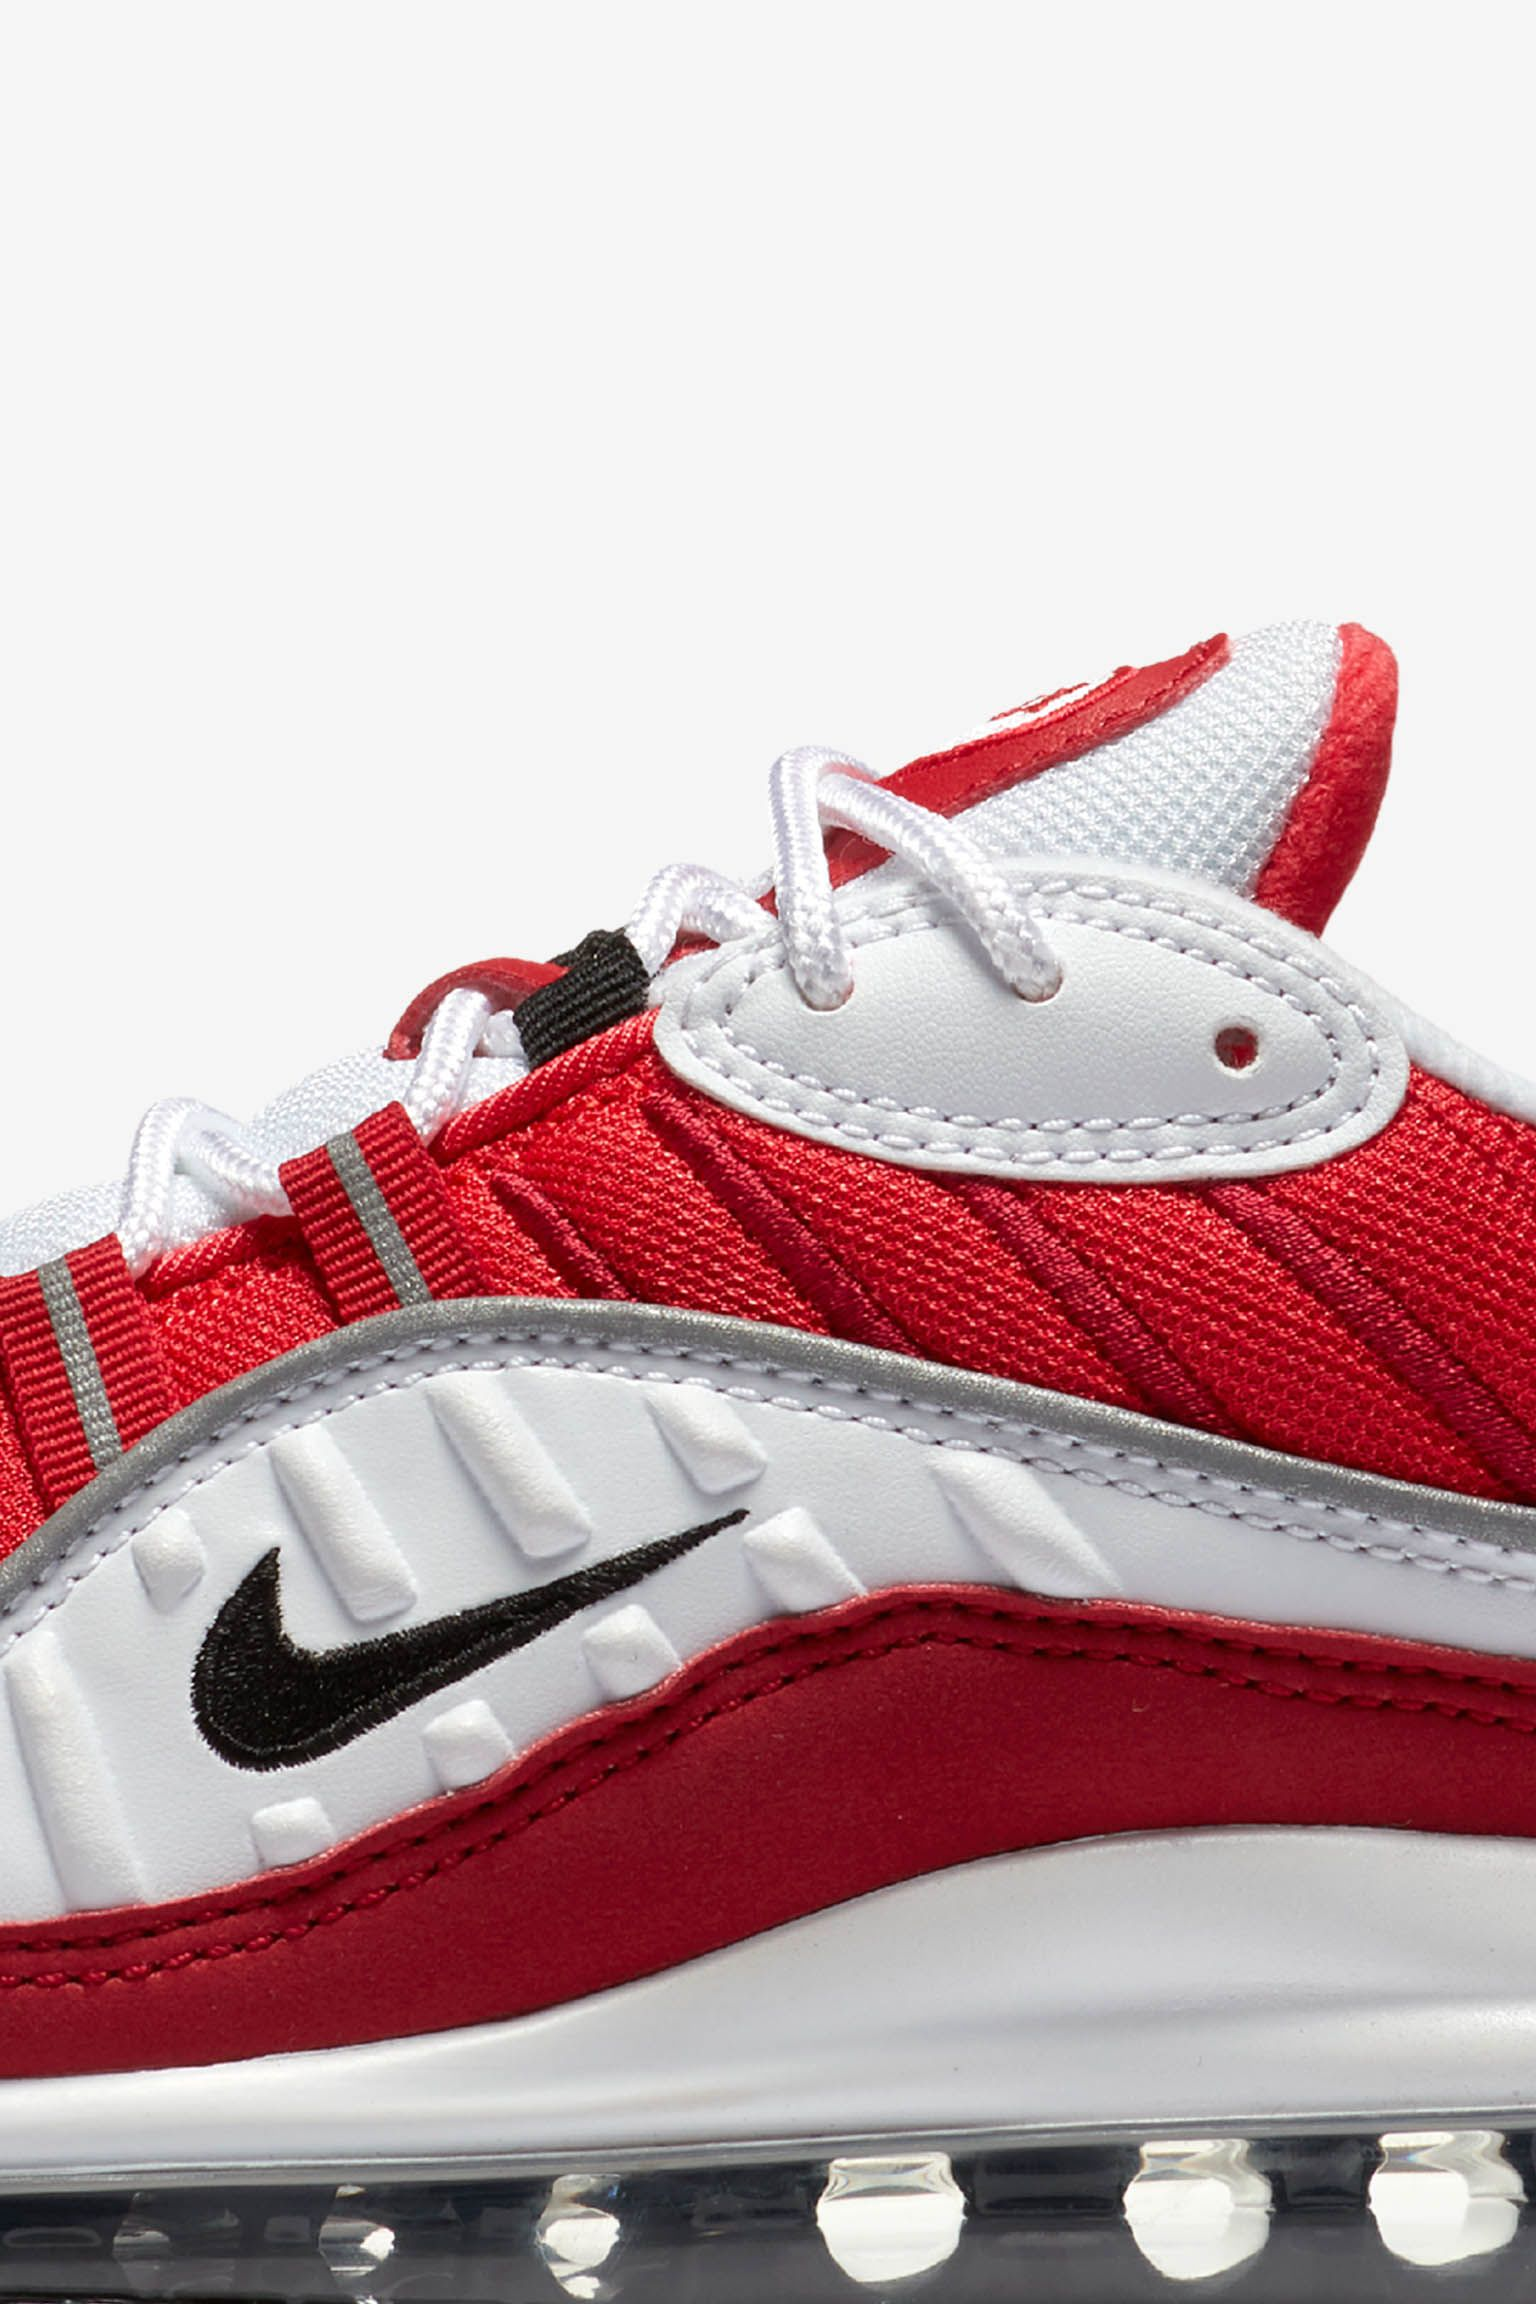 Nike Womens Air Max 98 'White & Gym Red' Release Date